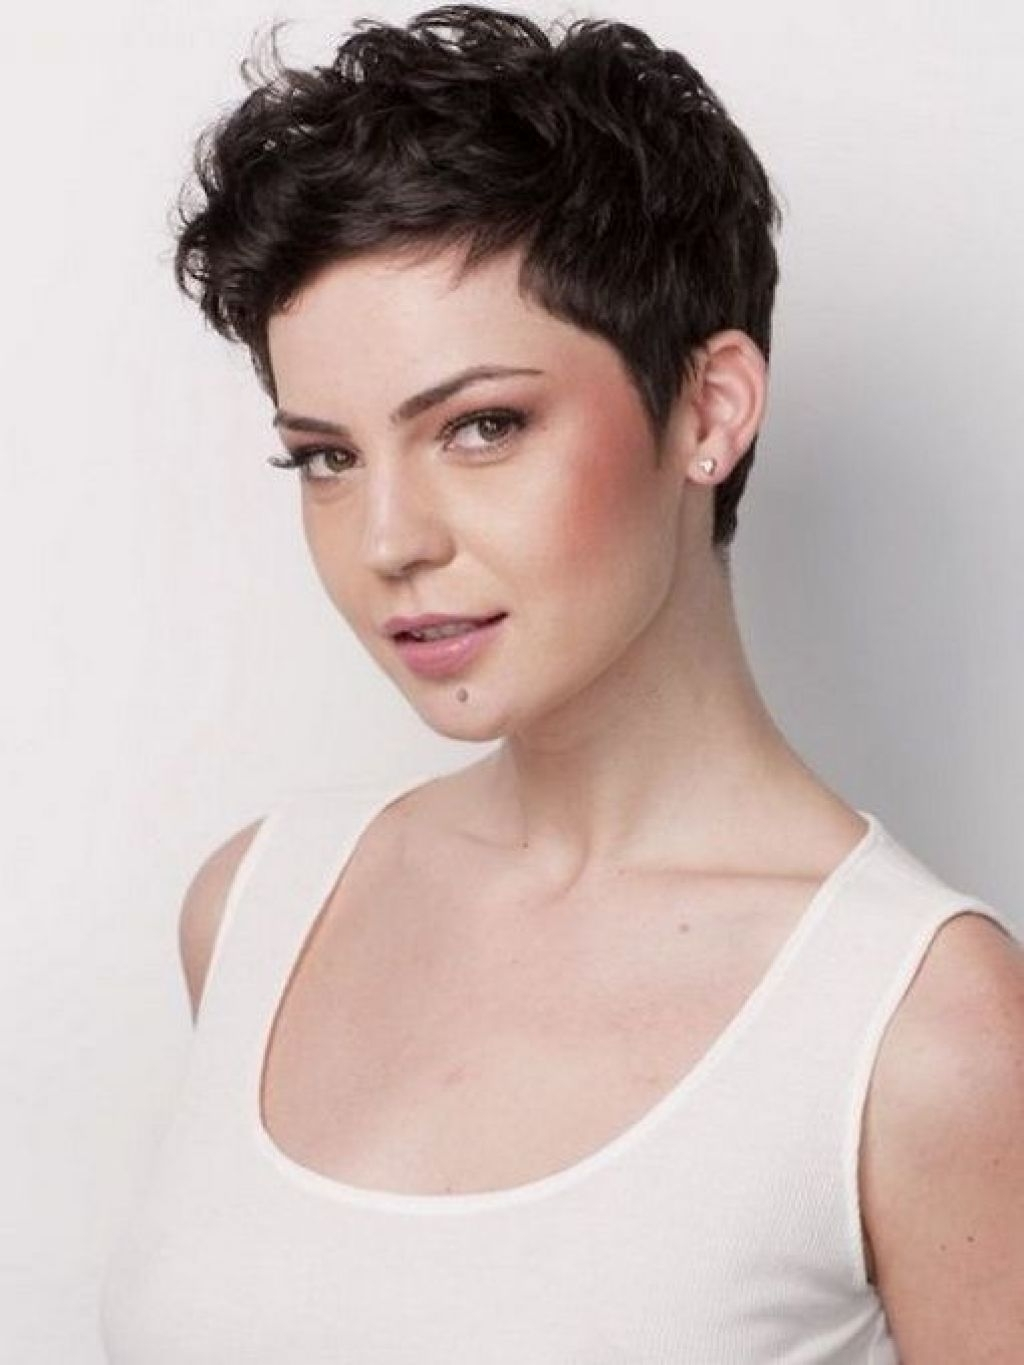 Short Curly Pixie Haircuts | Styles | Pinterest | Curly Pixie Intended For Most Recent Pixie Hairstyles For Thick Curly Hair (View 2 of 15)